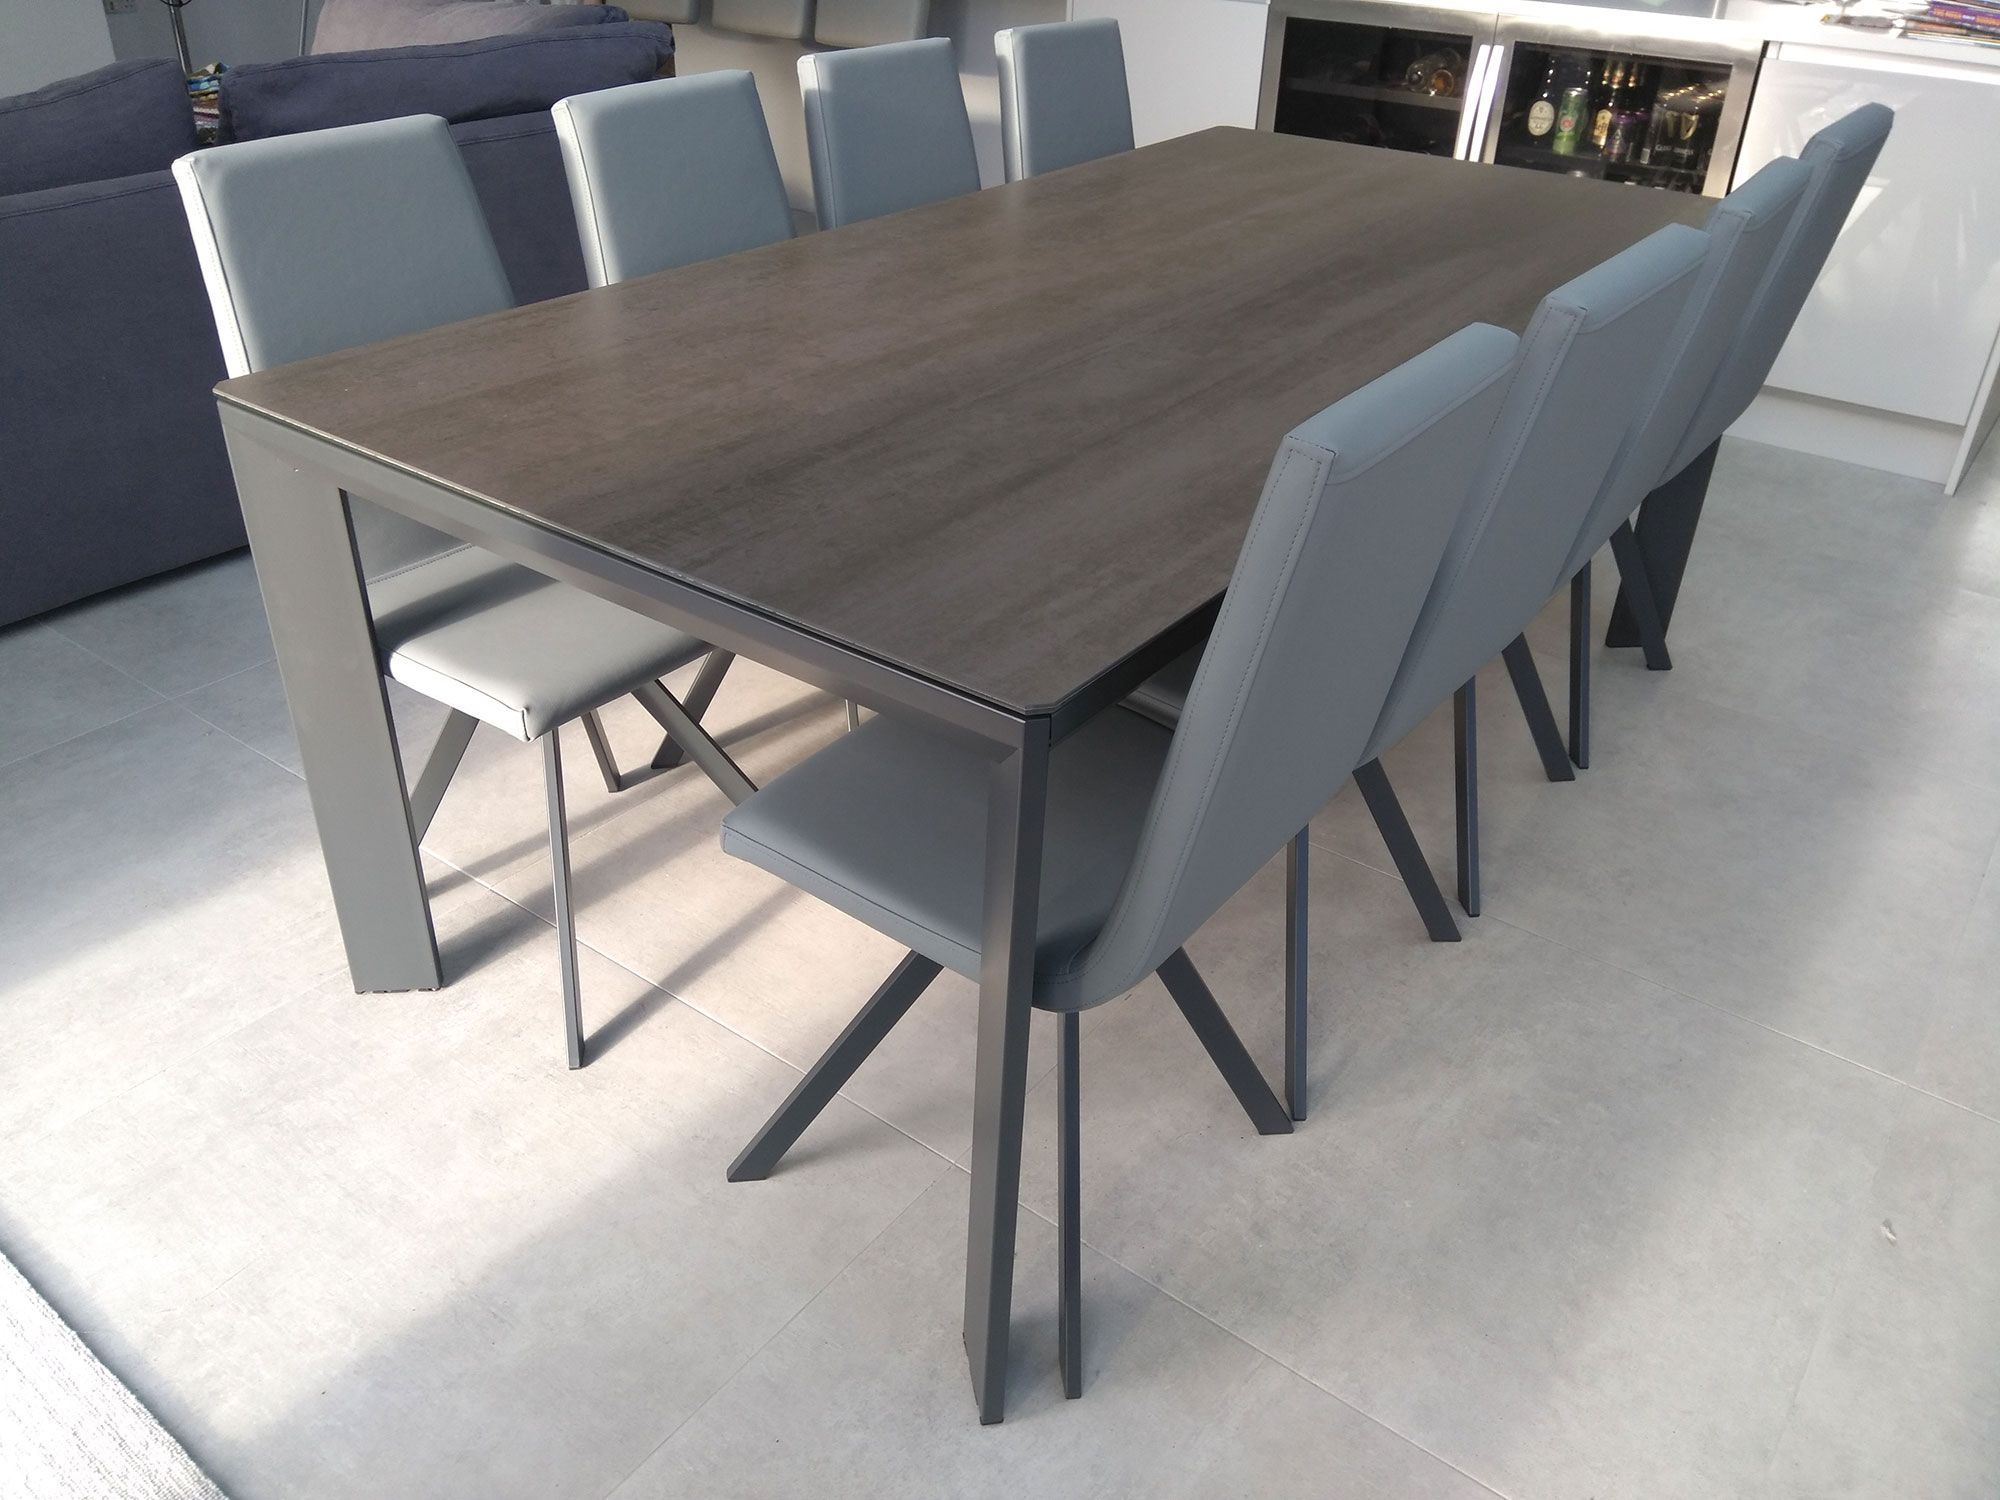 Urban Ceramic Dining Table In 2020 Dining Table Extendable